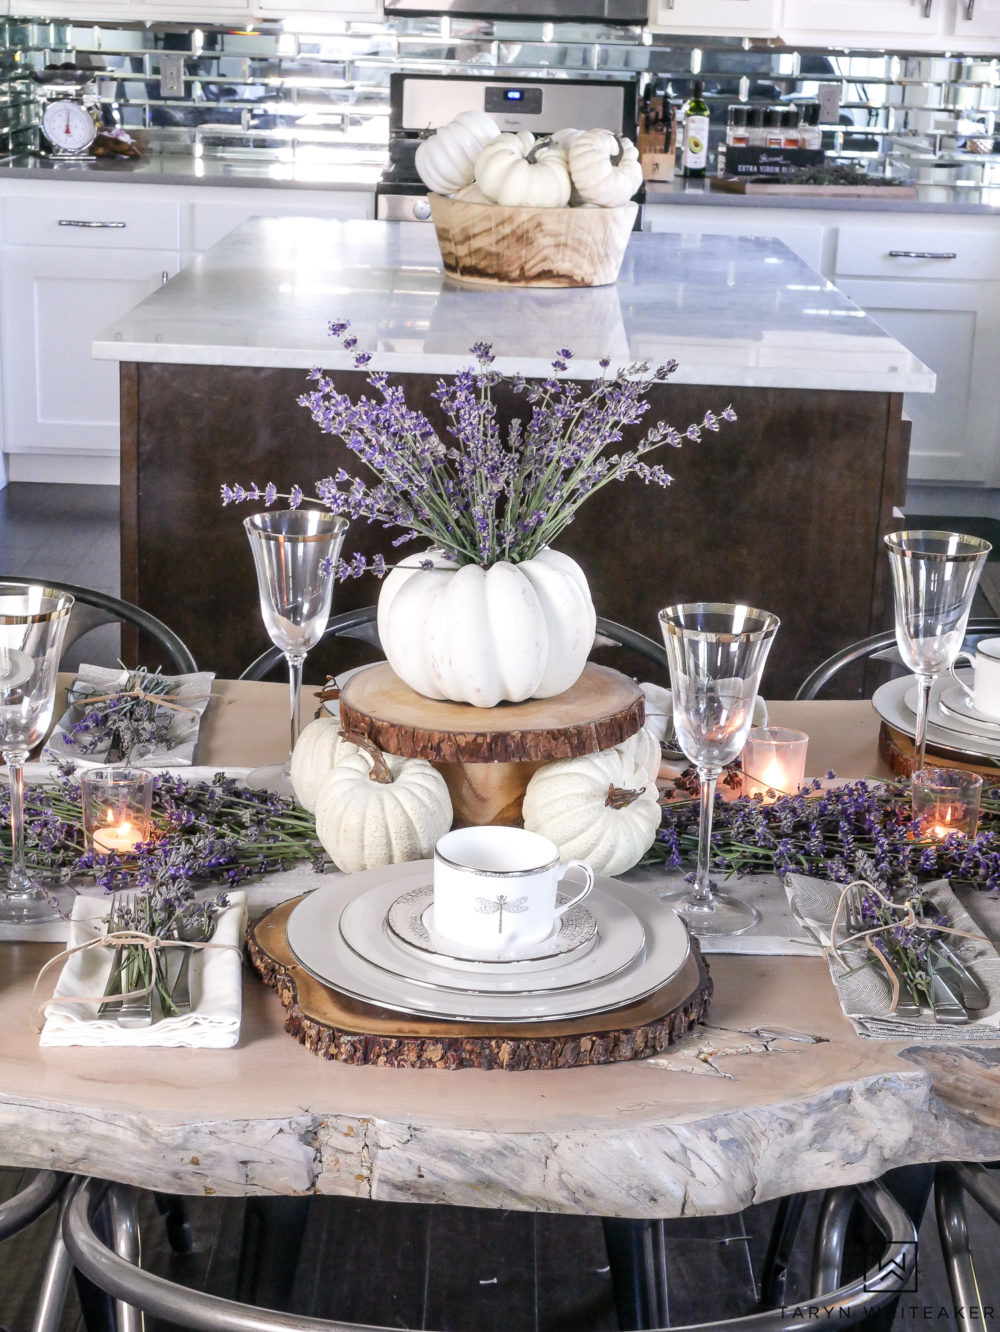 Live edge table all dressed up for fall with fresh lavender and white pumpkins!